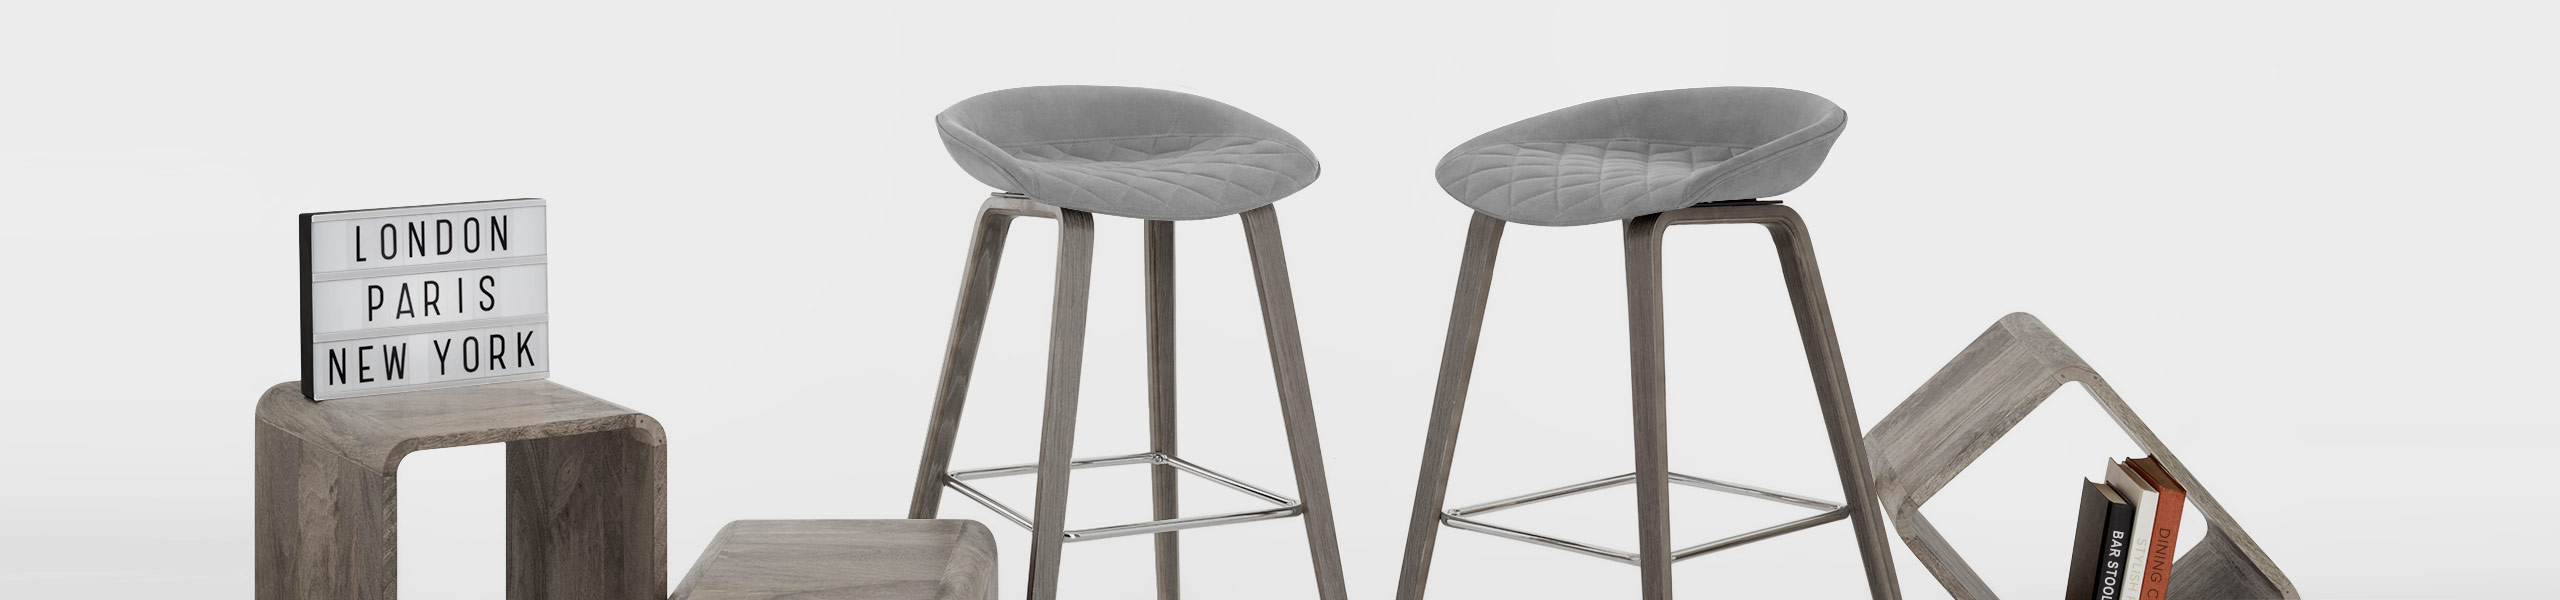 Epic Wooden Stool Grey Velvet Video Banner